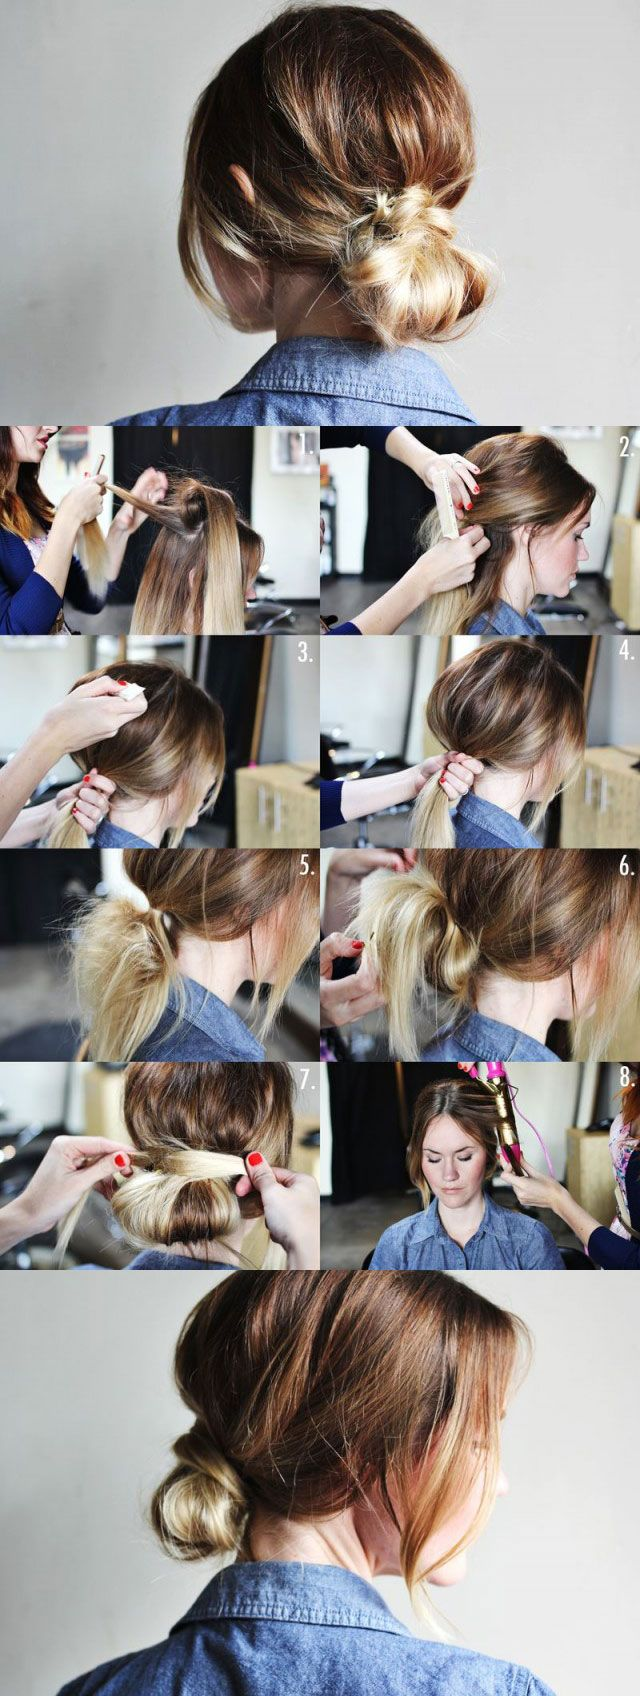 DIY! Your Step-by-Step for the Best Cute Hairstyles #doityourself #howto #diyrefashion